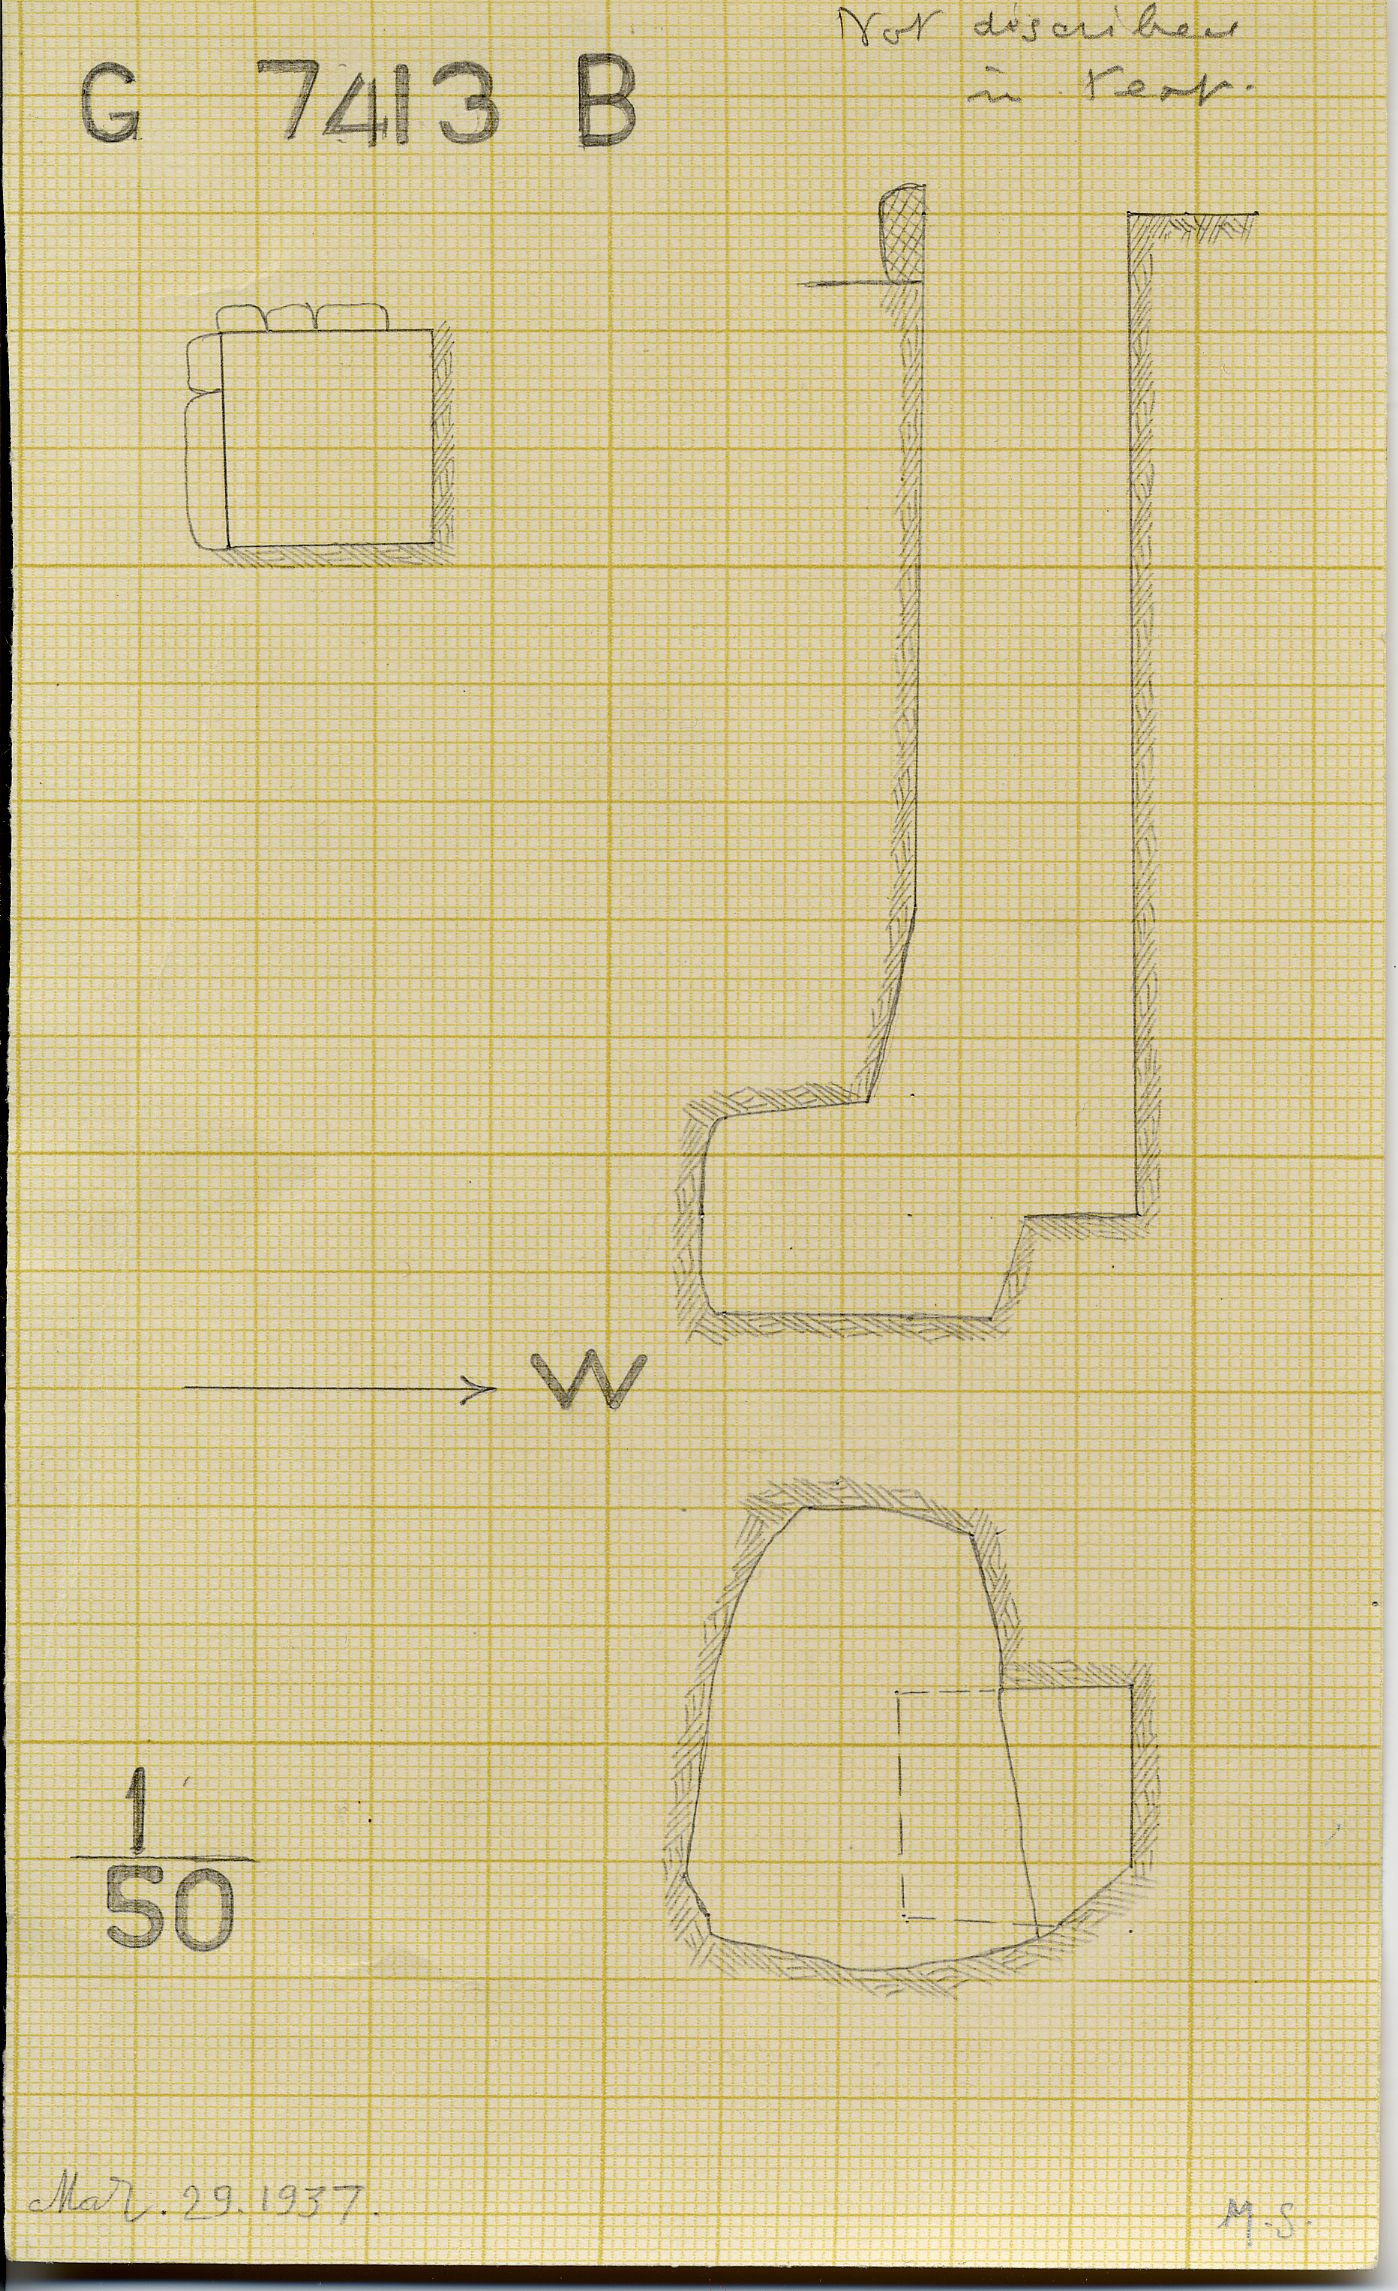 Maps and plans: G 7413, Shaft B